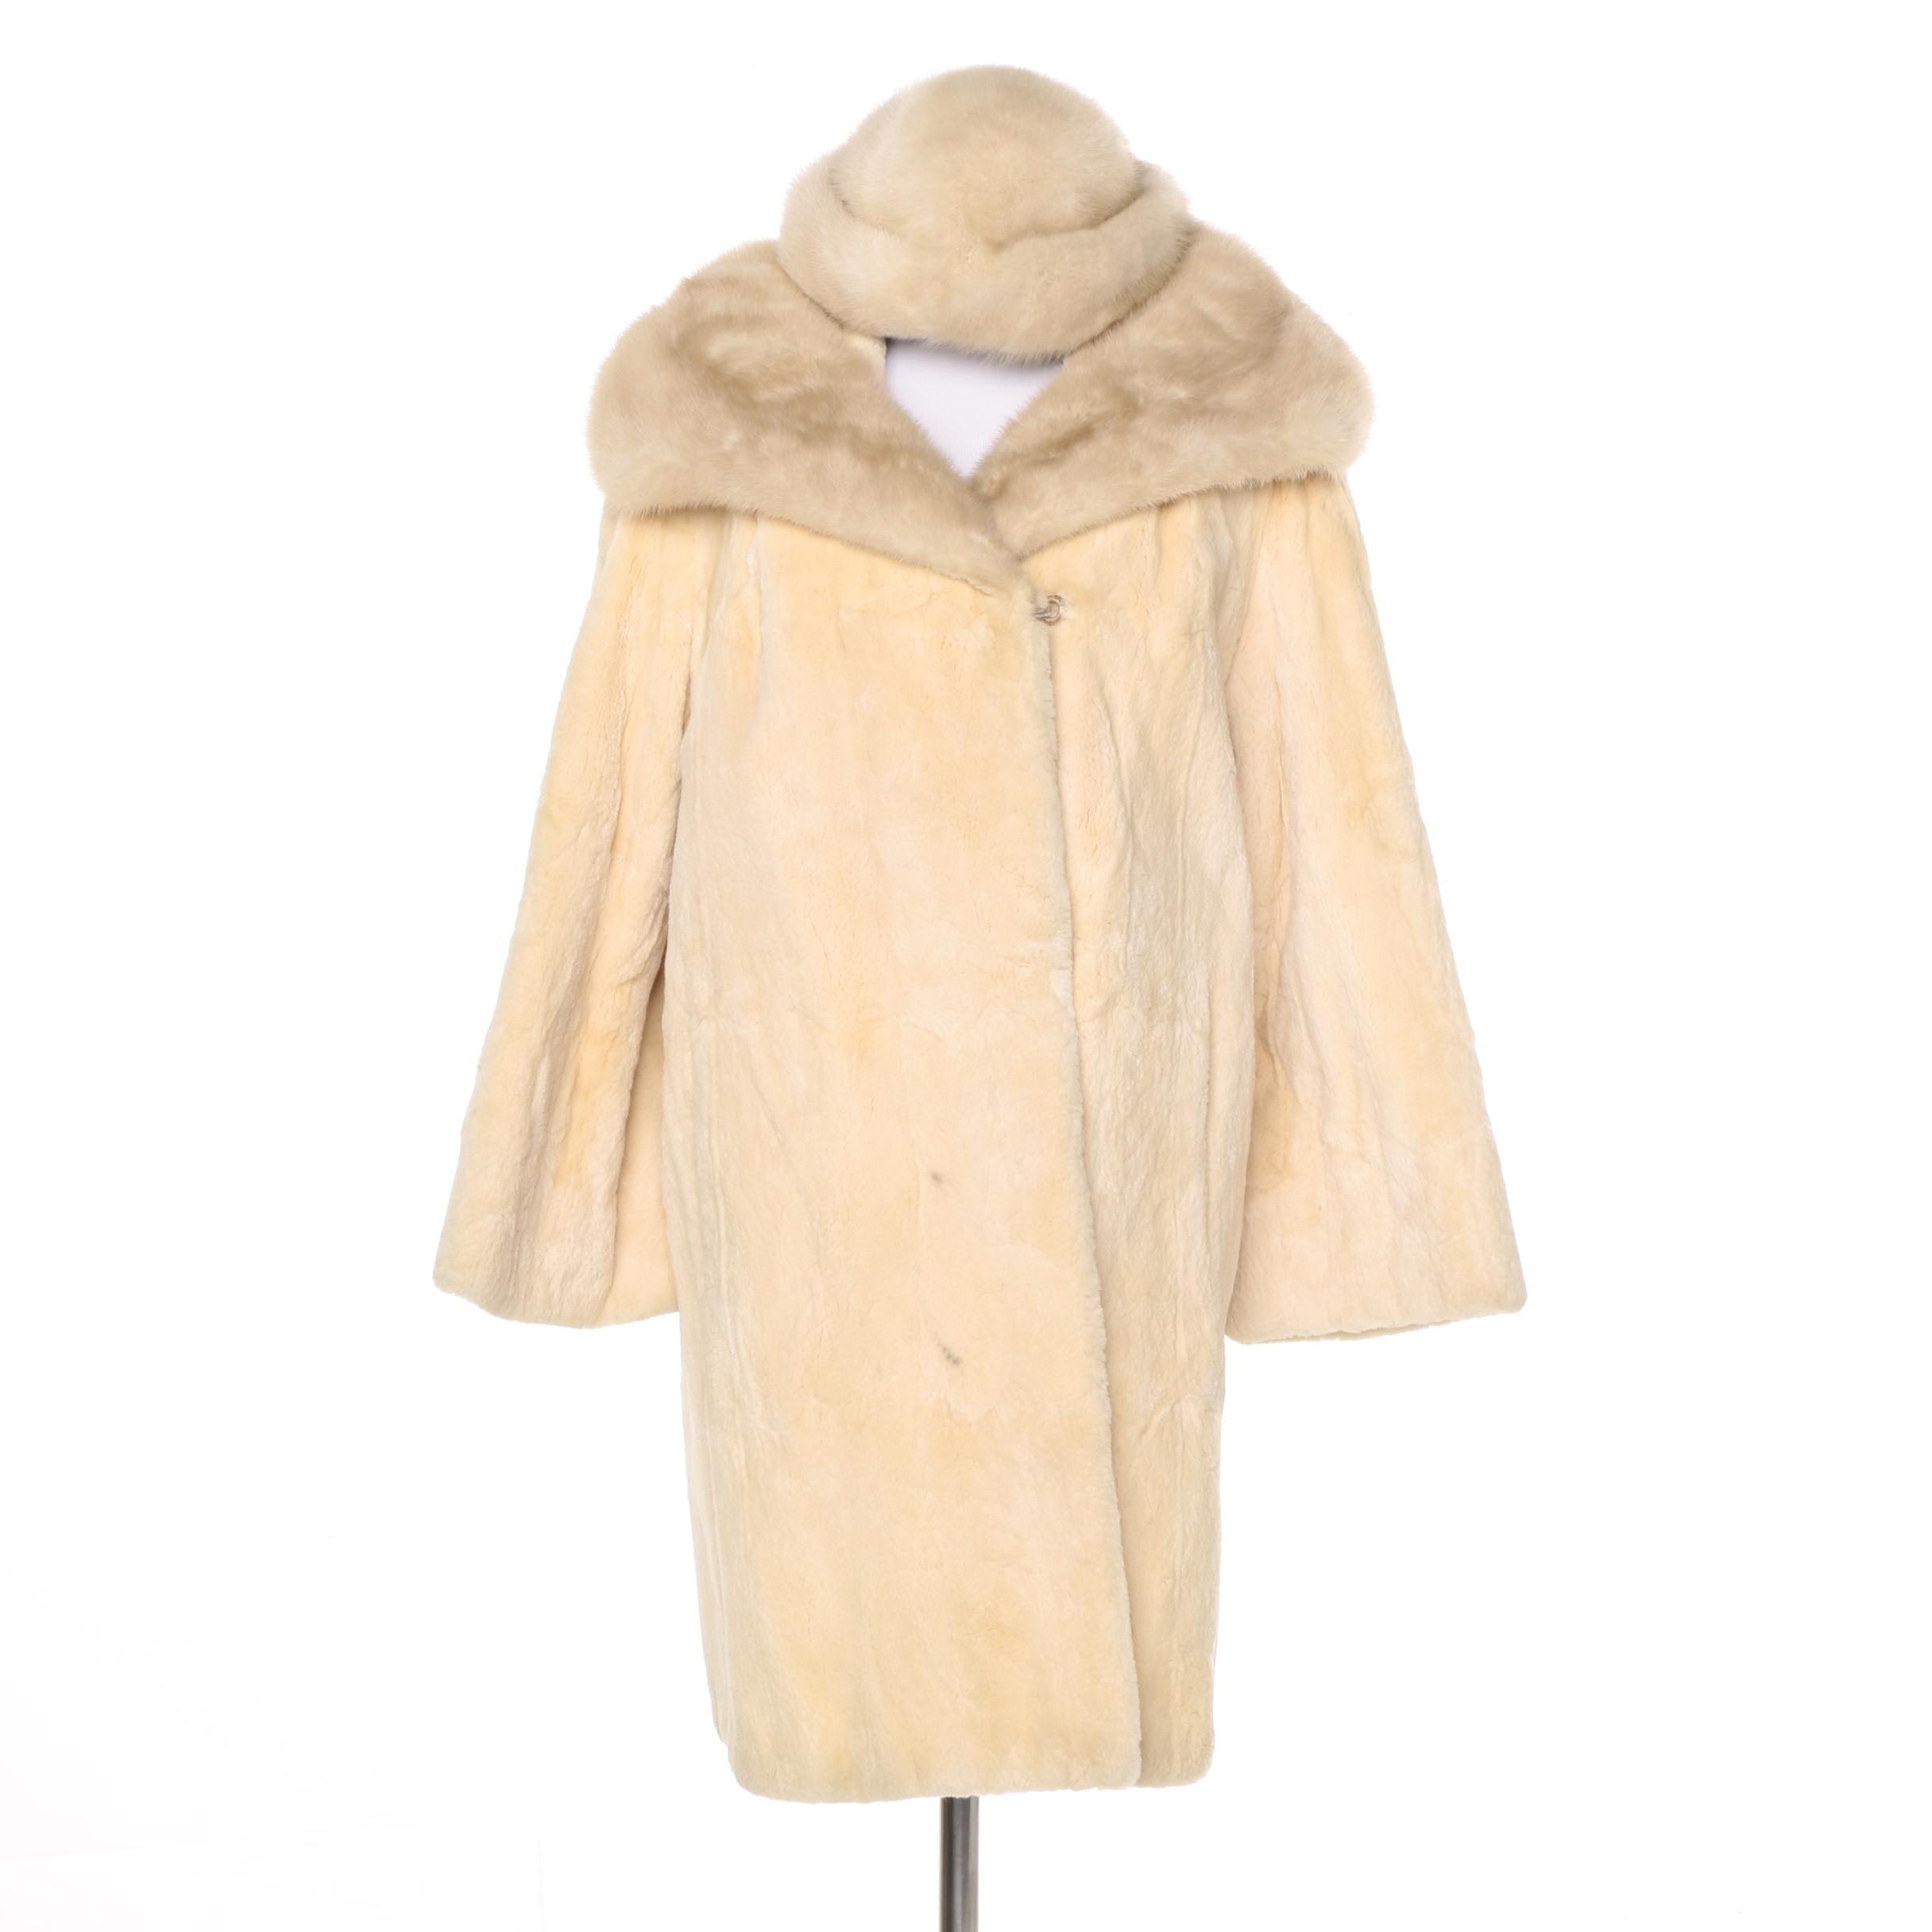 David Green Sheared Beaver Fur Coat with Mink Fur trim and a Mink Fur Hat